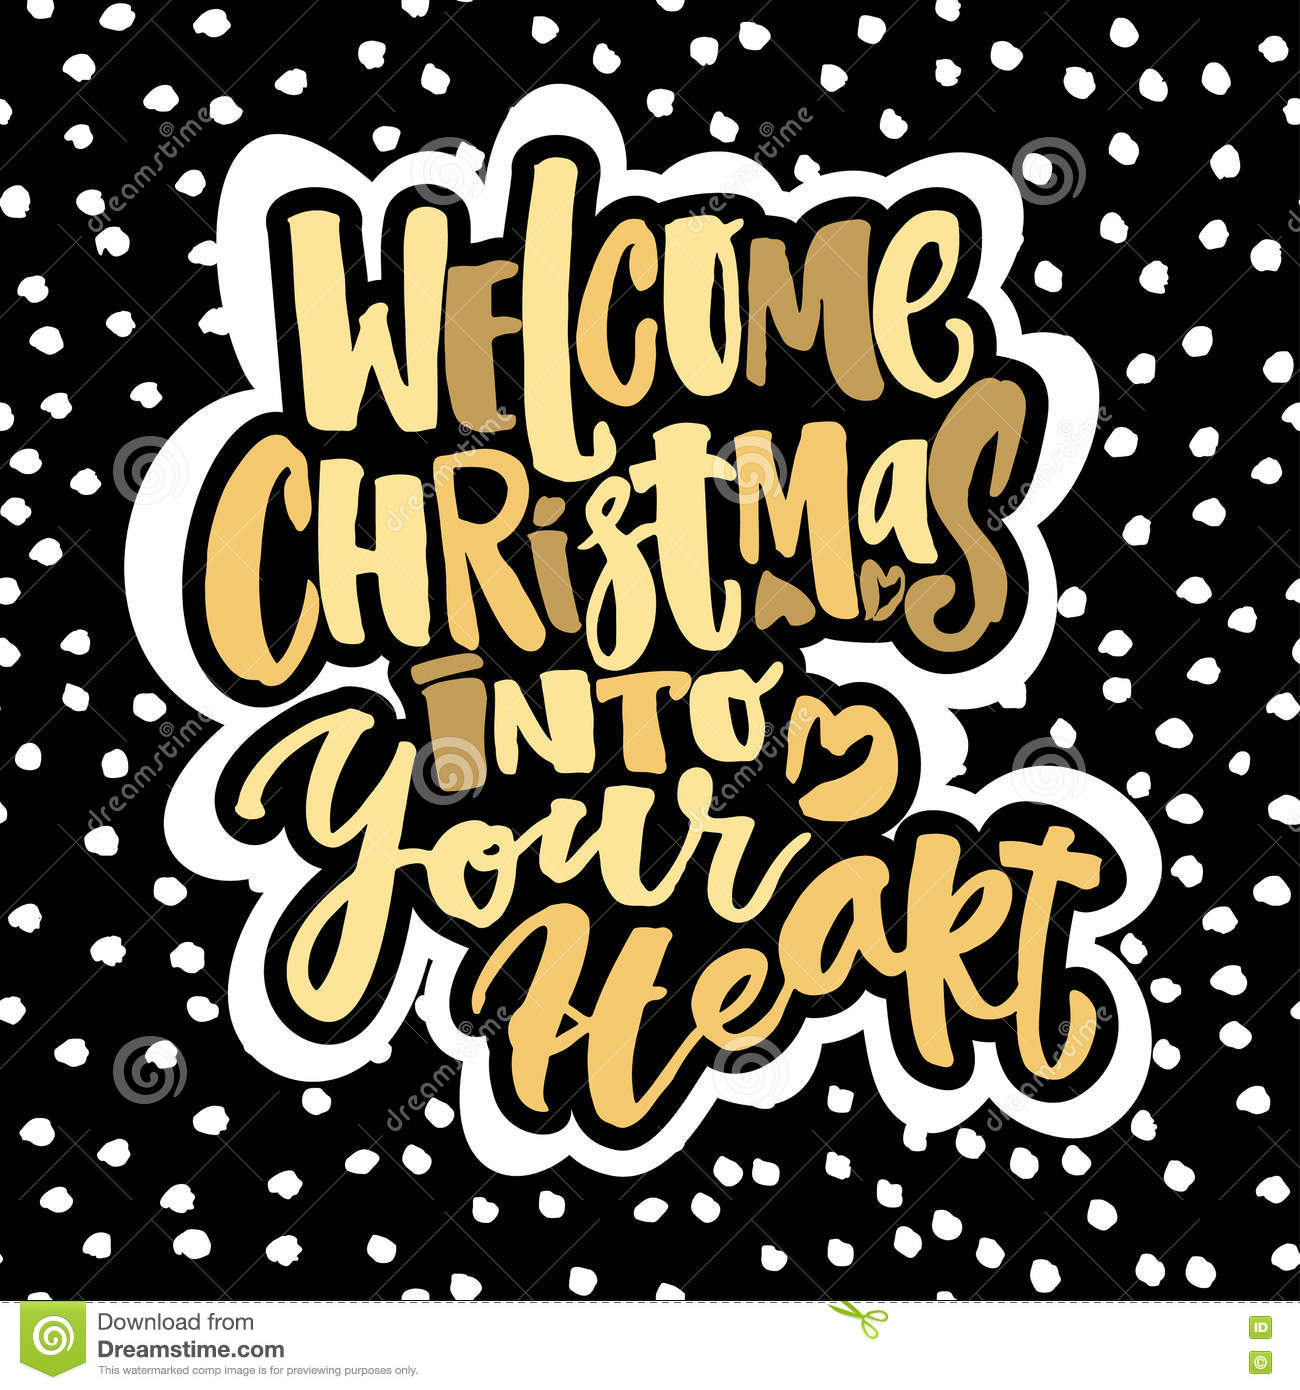 Welcome christmas into your heart stock vector illustration of download welcome christmas into your heart stock vector illustration of party greeting 80403071 m4hsunfo